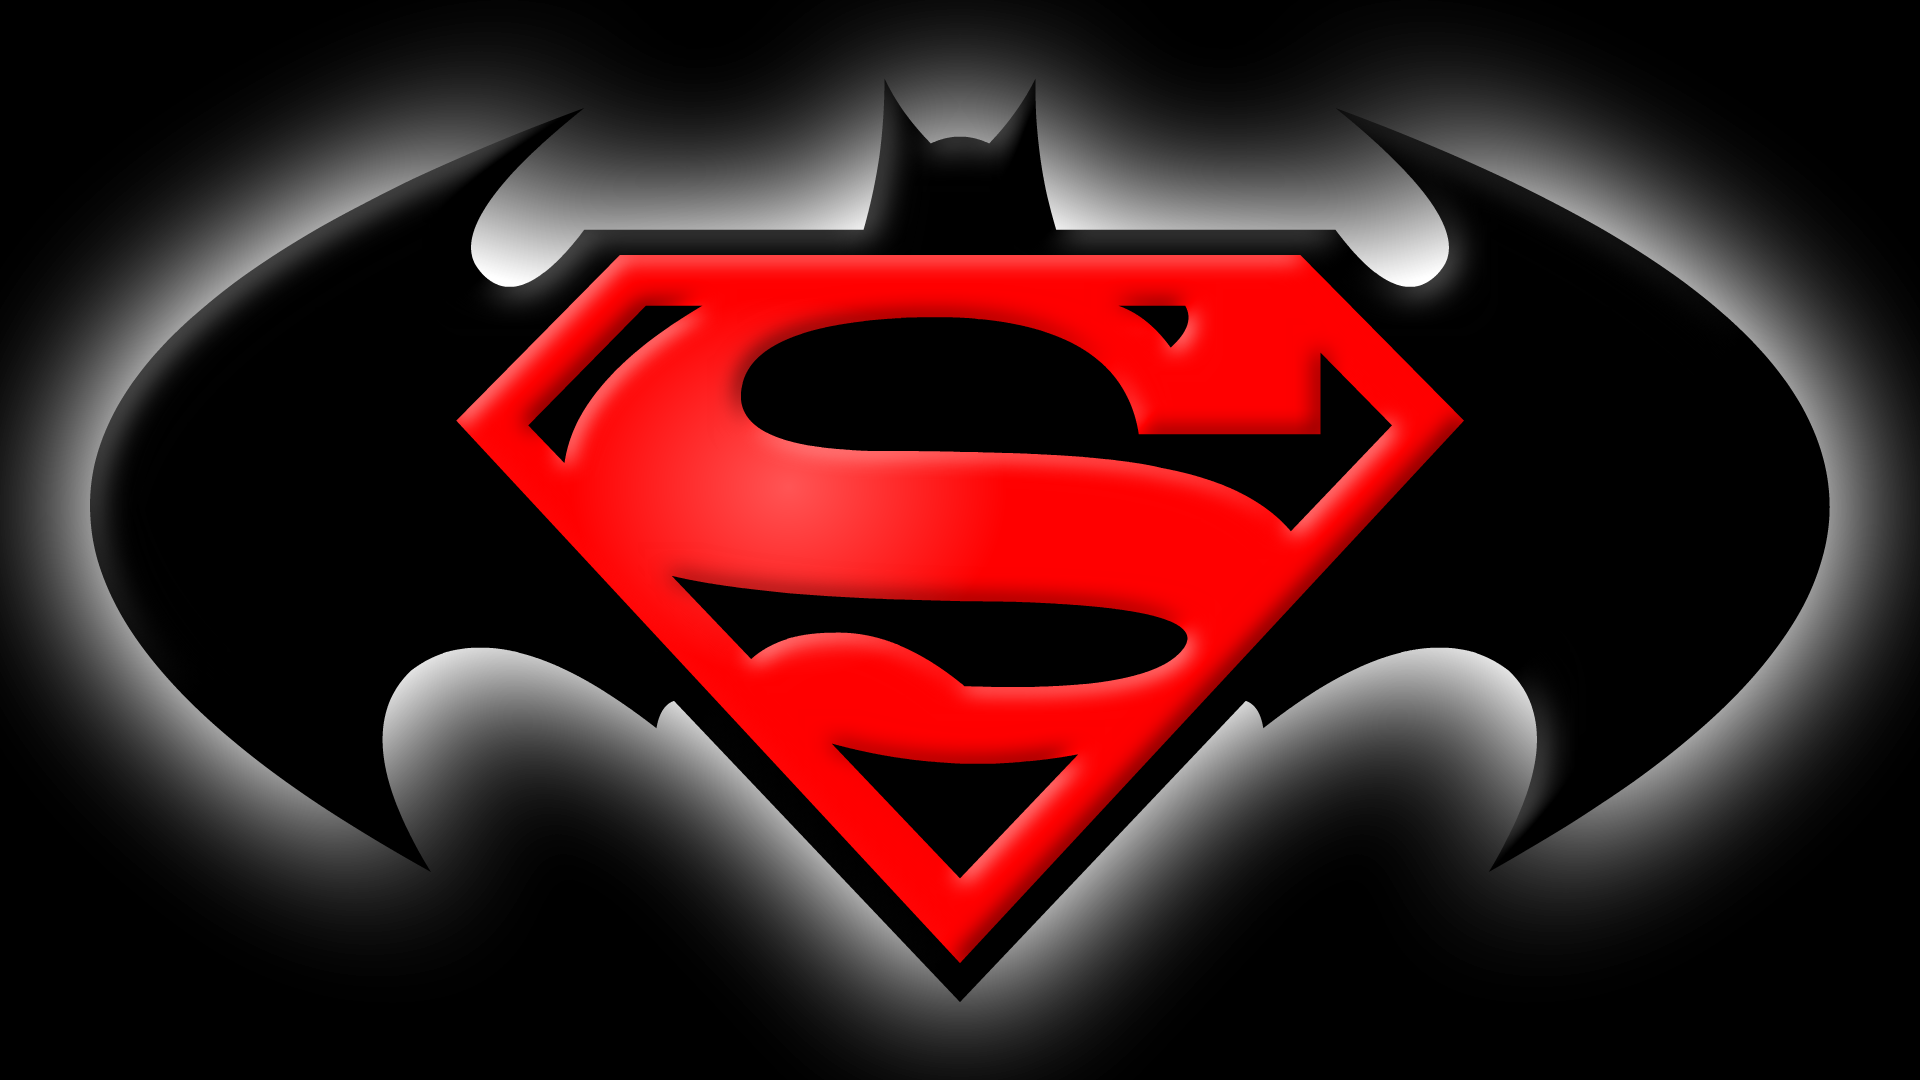 Free Batman Vs Superman Logo Png, Download Free Clip Art.